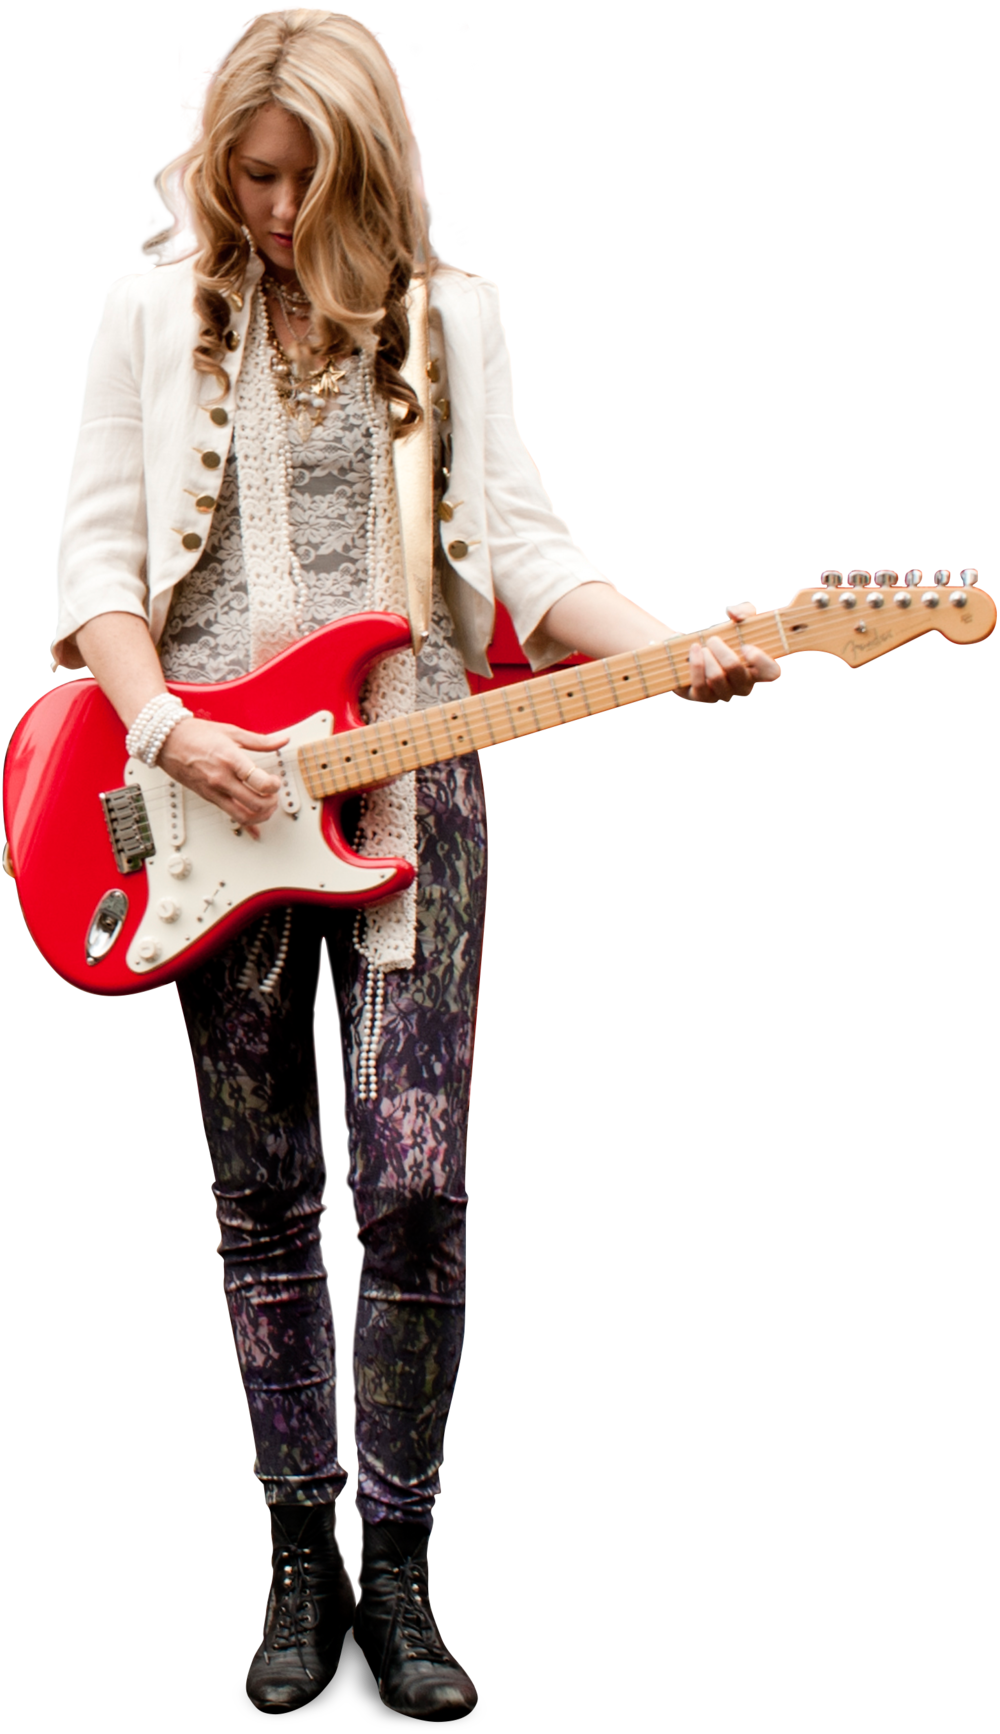 Beatie Wolfe - Cut Out - playing guitar - made by emily g.png